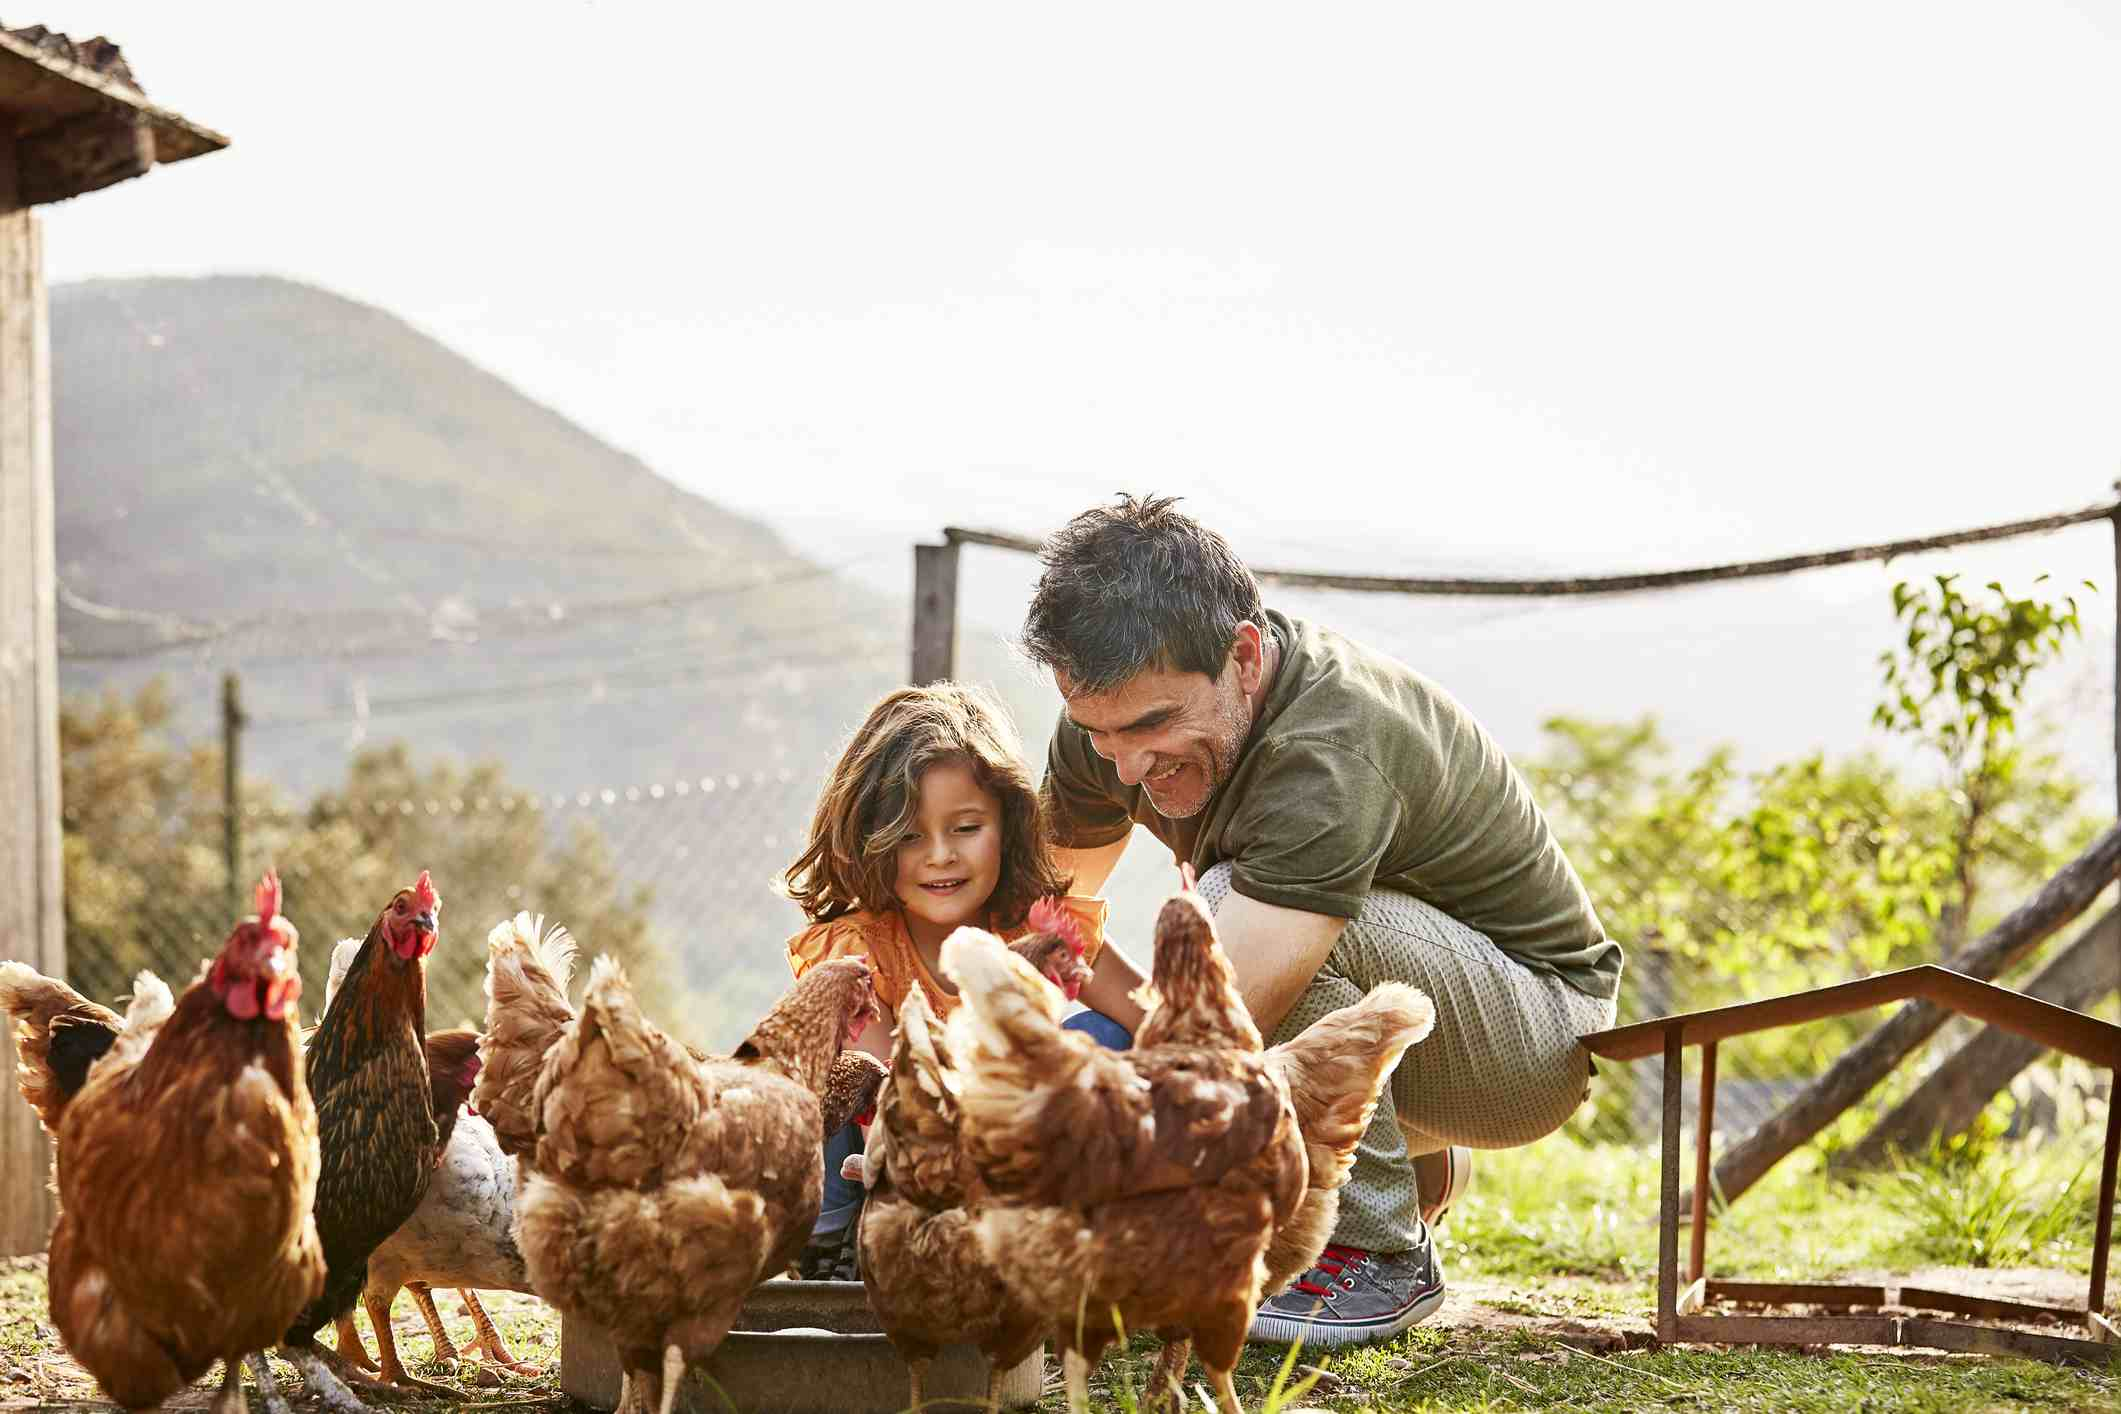 Father and daughter feeding chickens